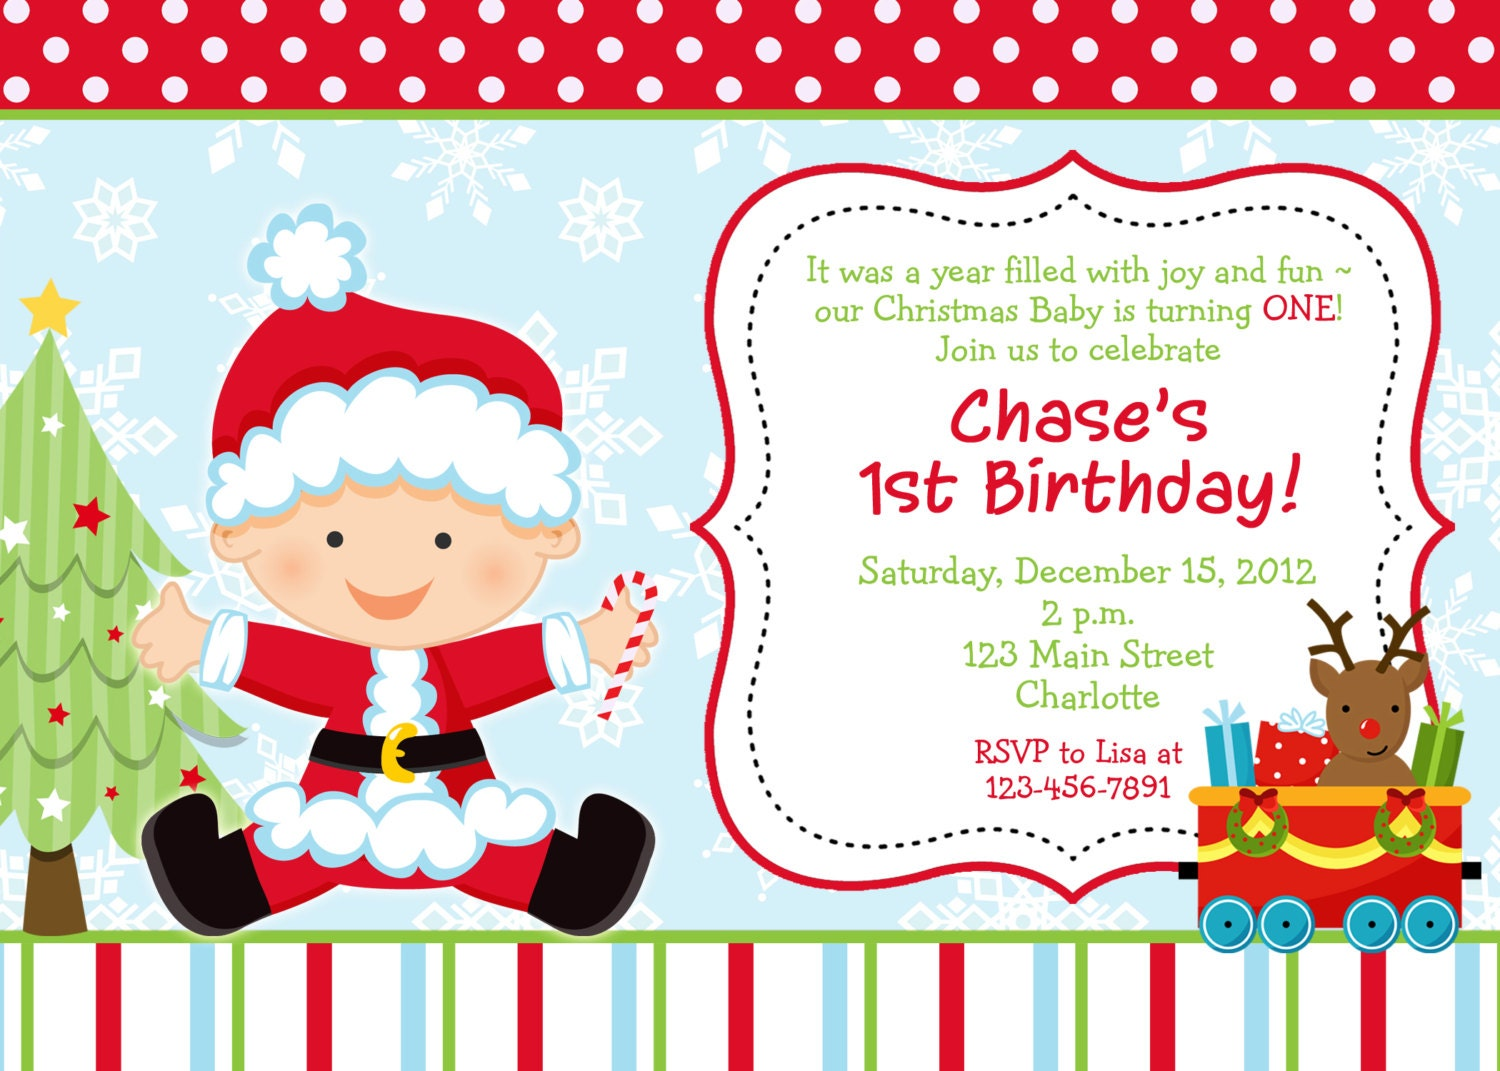 First birthday Christmas party invitation by TheButterflyPress: https://www.etsy.com/listing/112952464/first-birthday-christmas-party